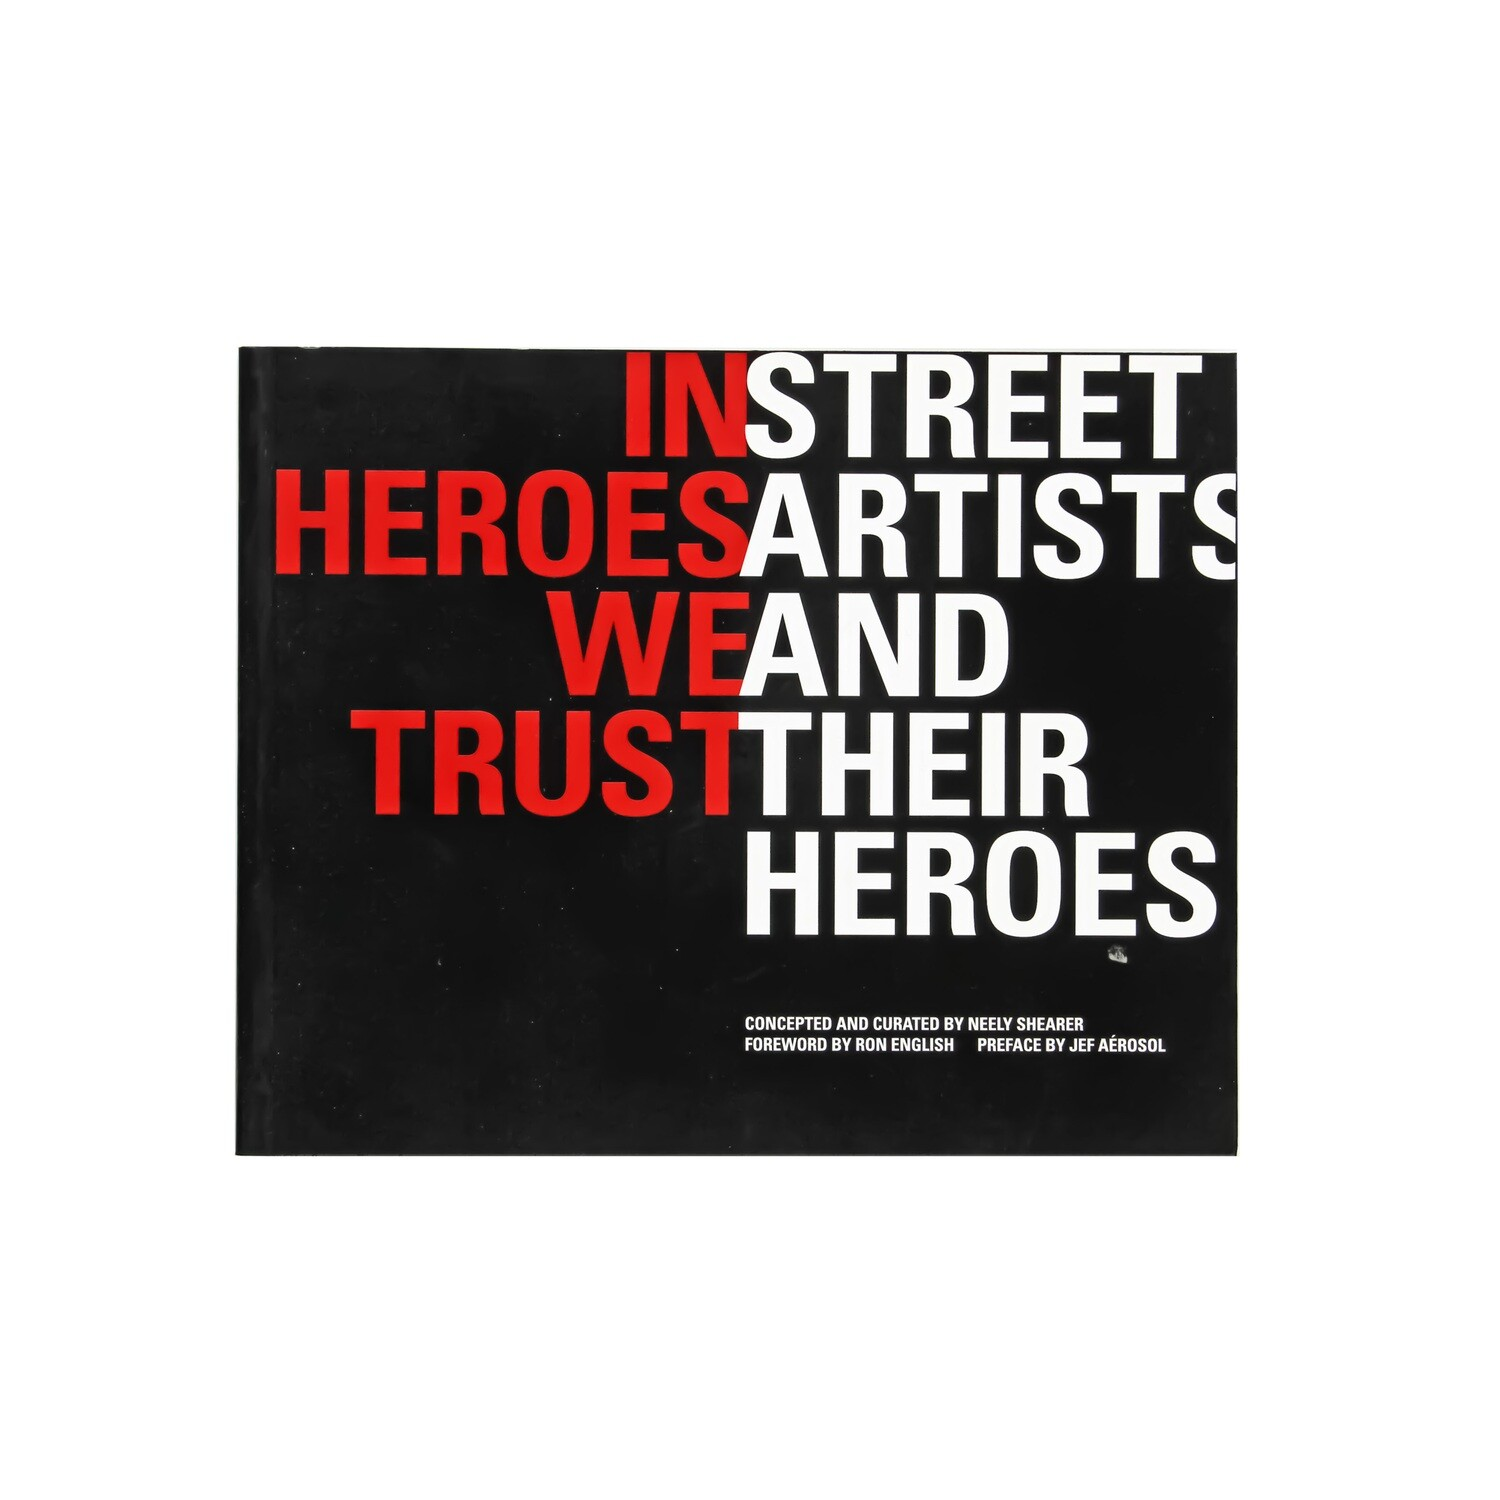 In Heroes We Trust: Street Artist and Their Heroes